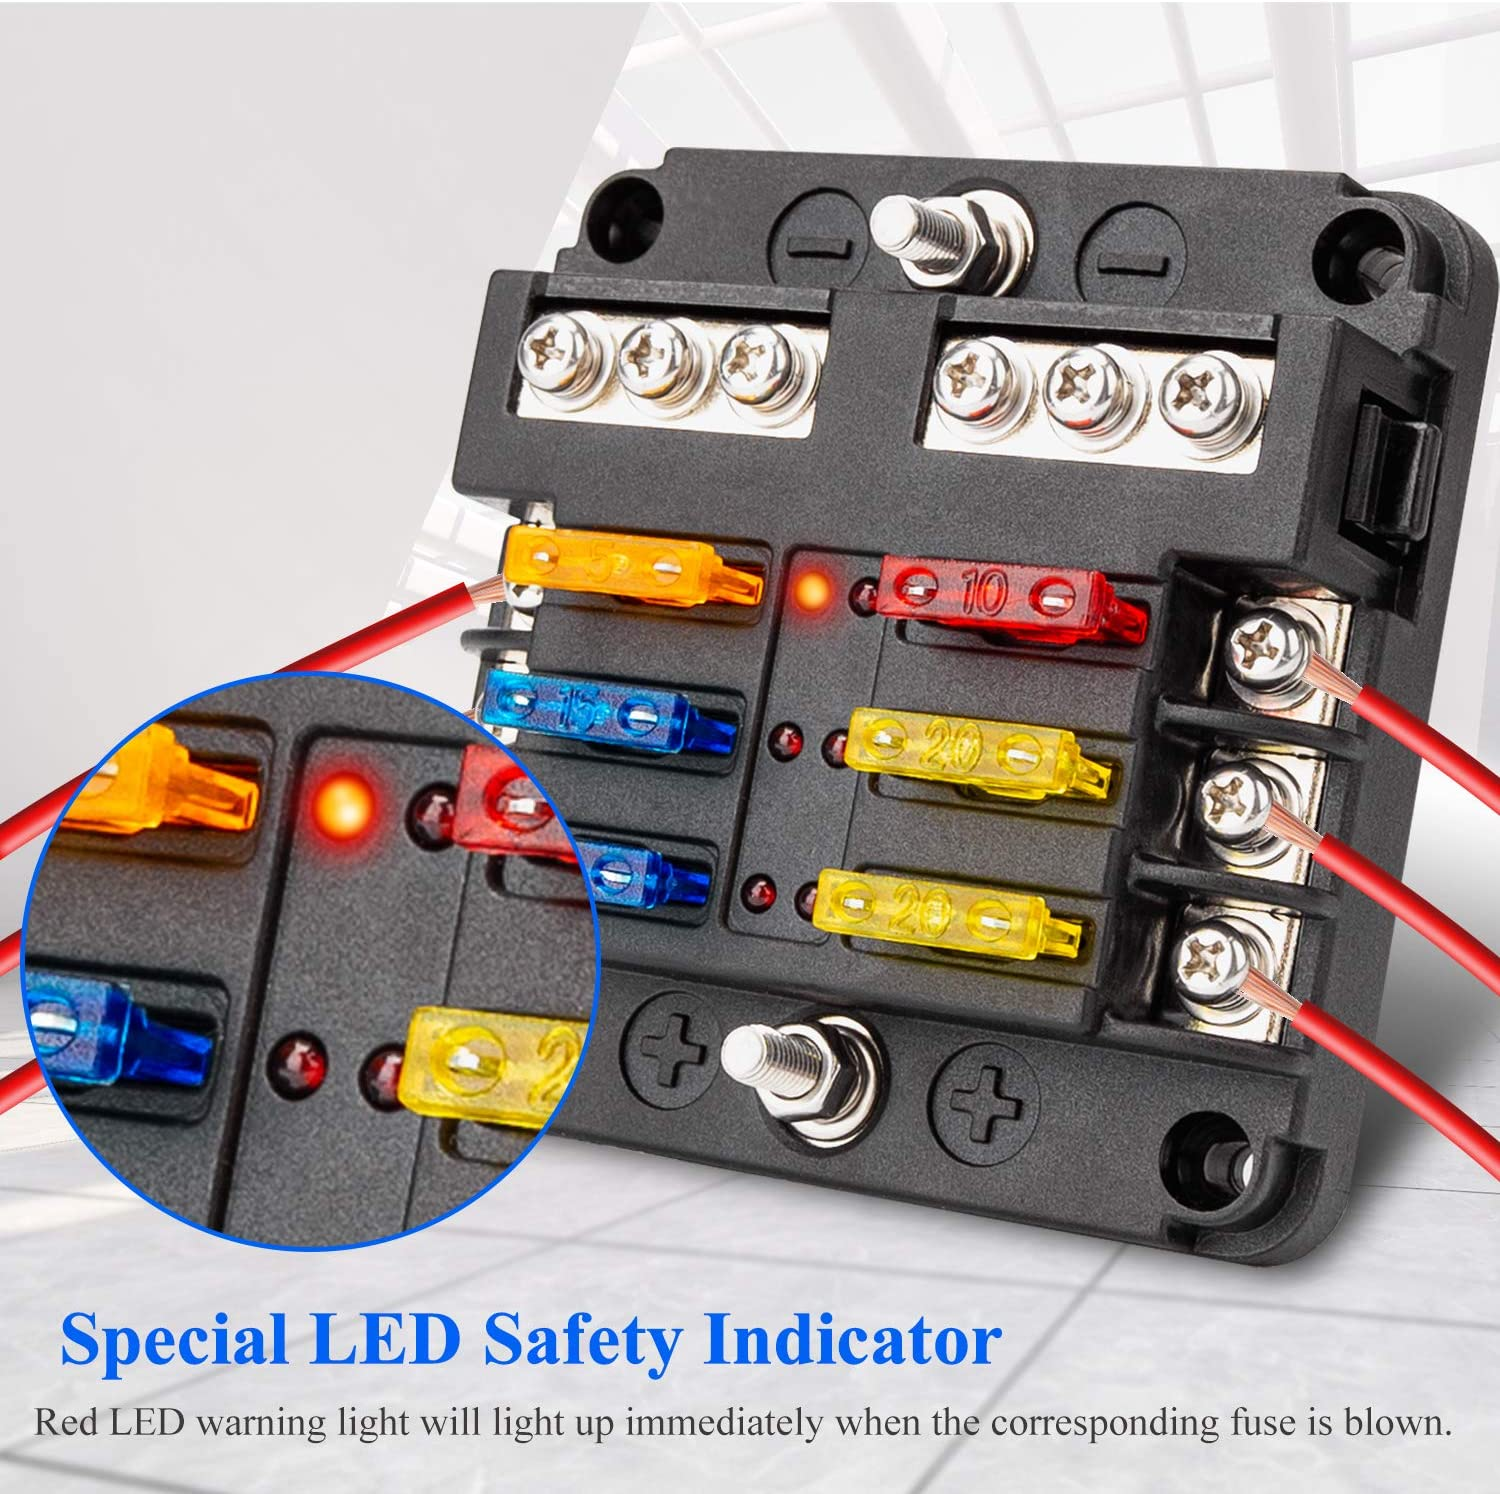 Extractme 12V 6-Way Blade Fuse Box Holder with 10Pcs Fuse Fuse Box Block with LED Indicator Durable Protection Cover and Sticker Label for Automotive Car Boat SUV BUS Subway and Yacht